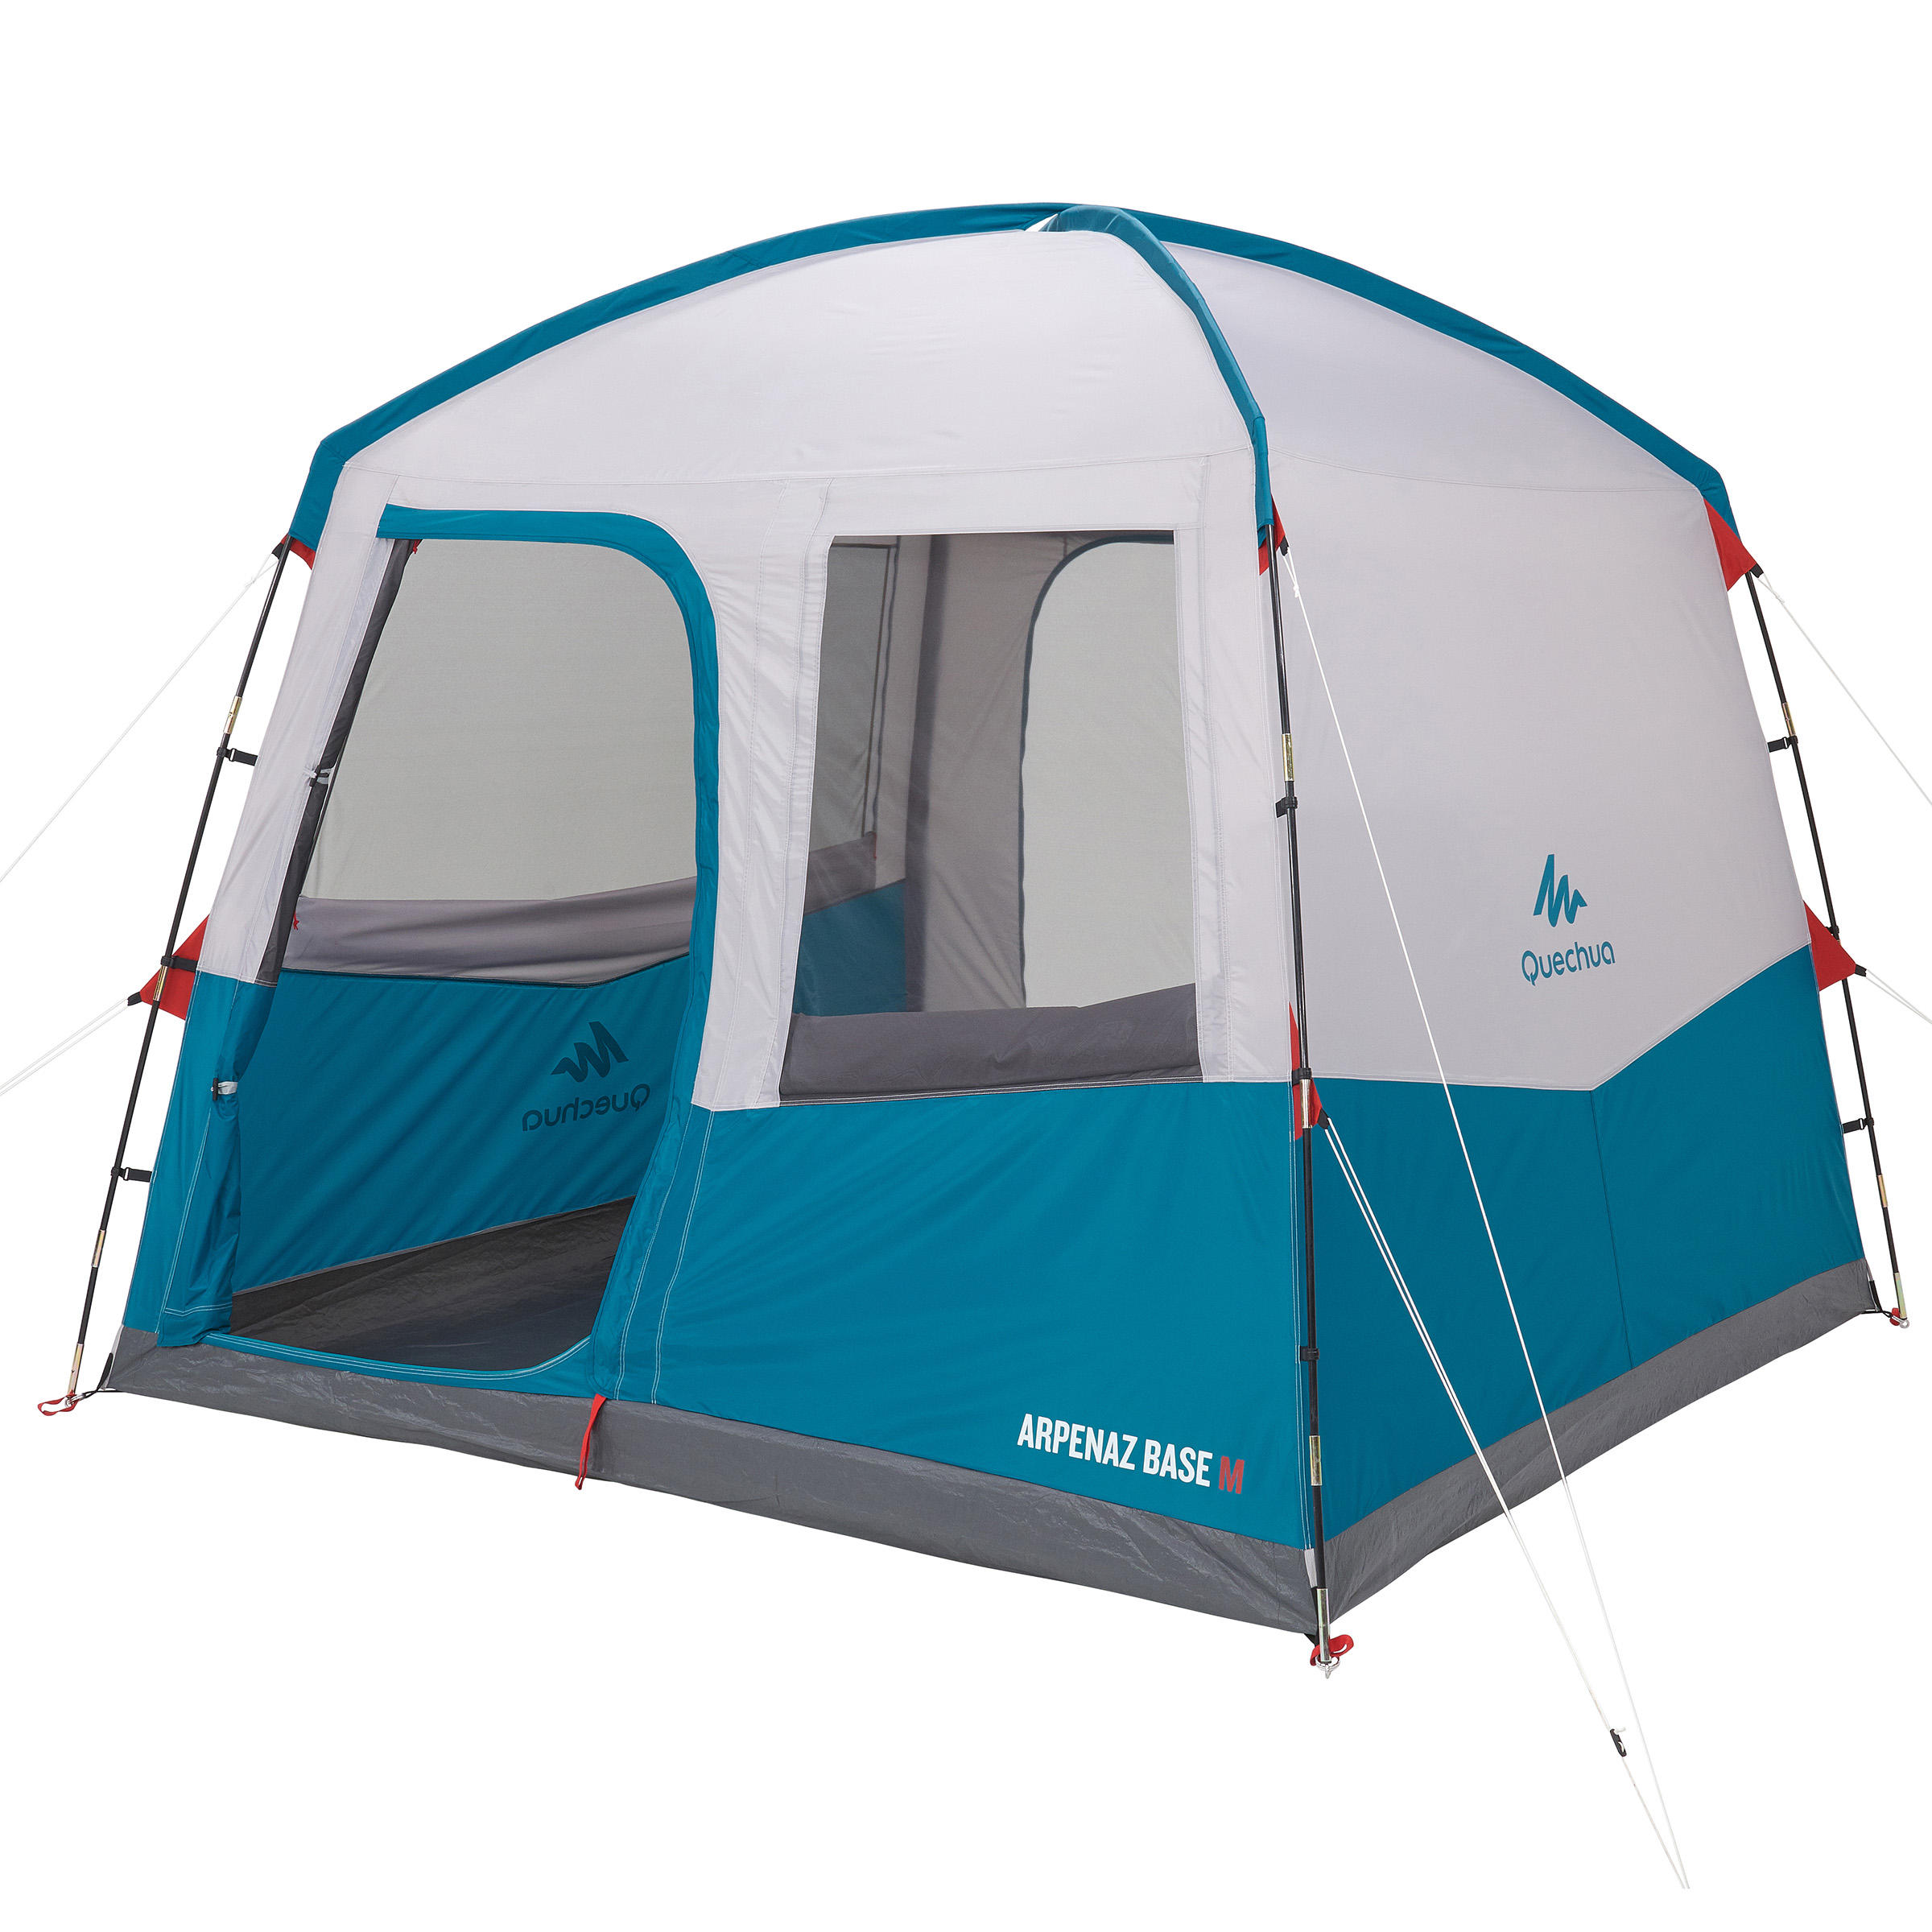 sc 1 th 225 & Camping shelter Camping Arpenaz base M | 8 persons Quechua - Decathlon